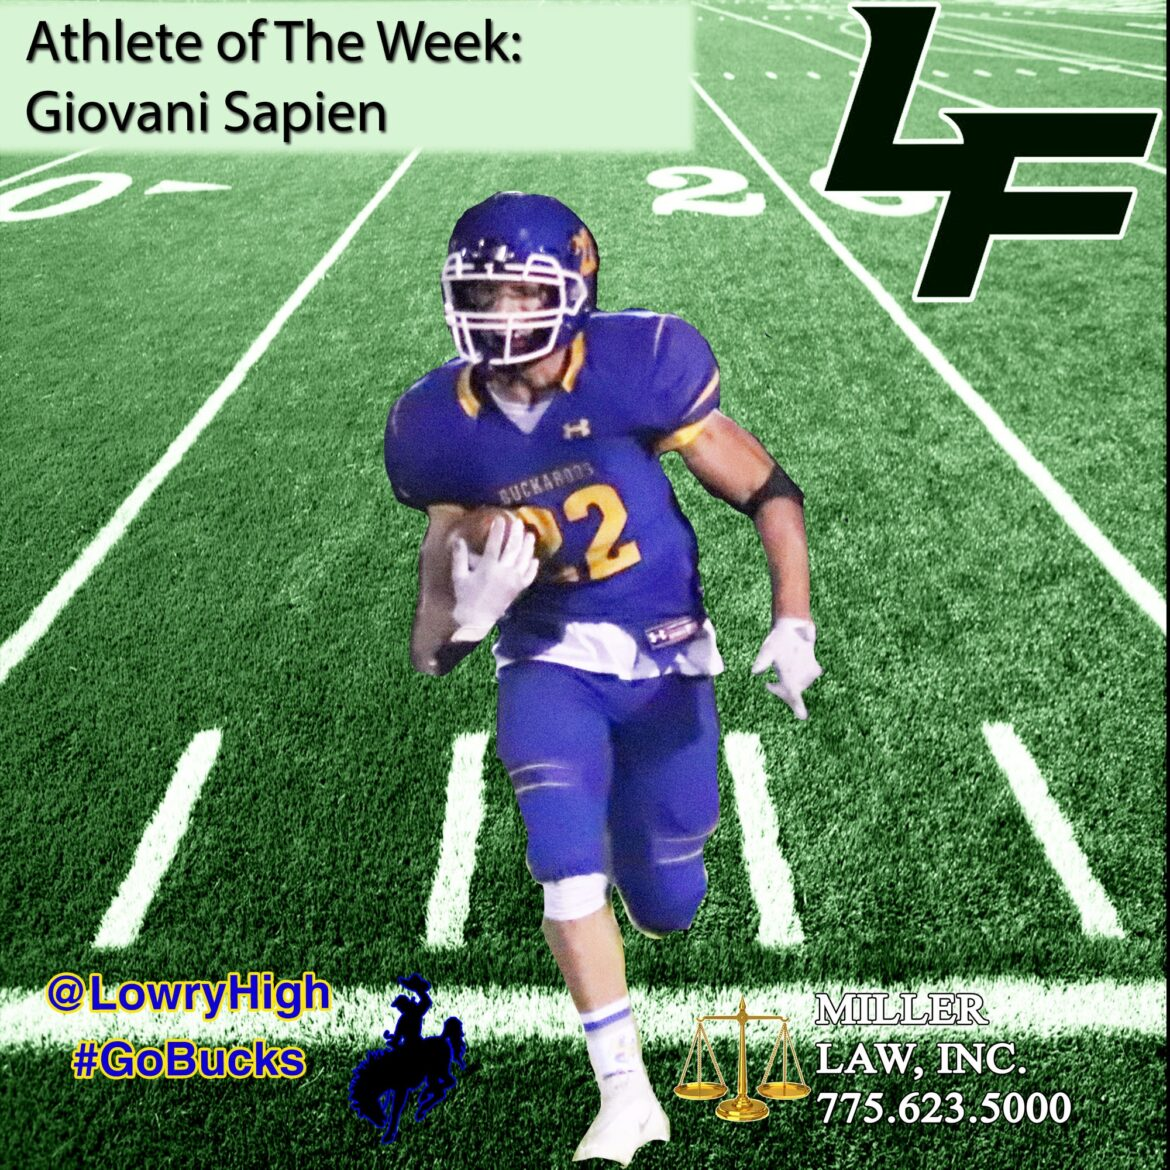 Giovani Sapien selected as Athlete of the Week